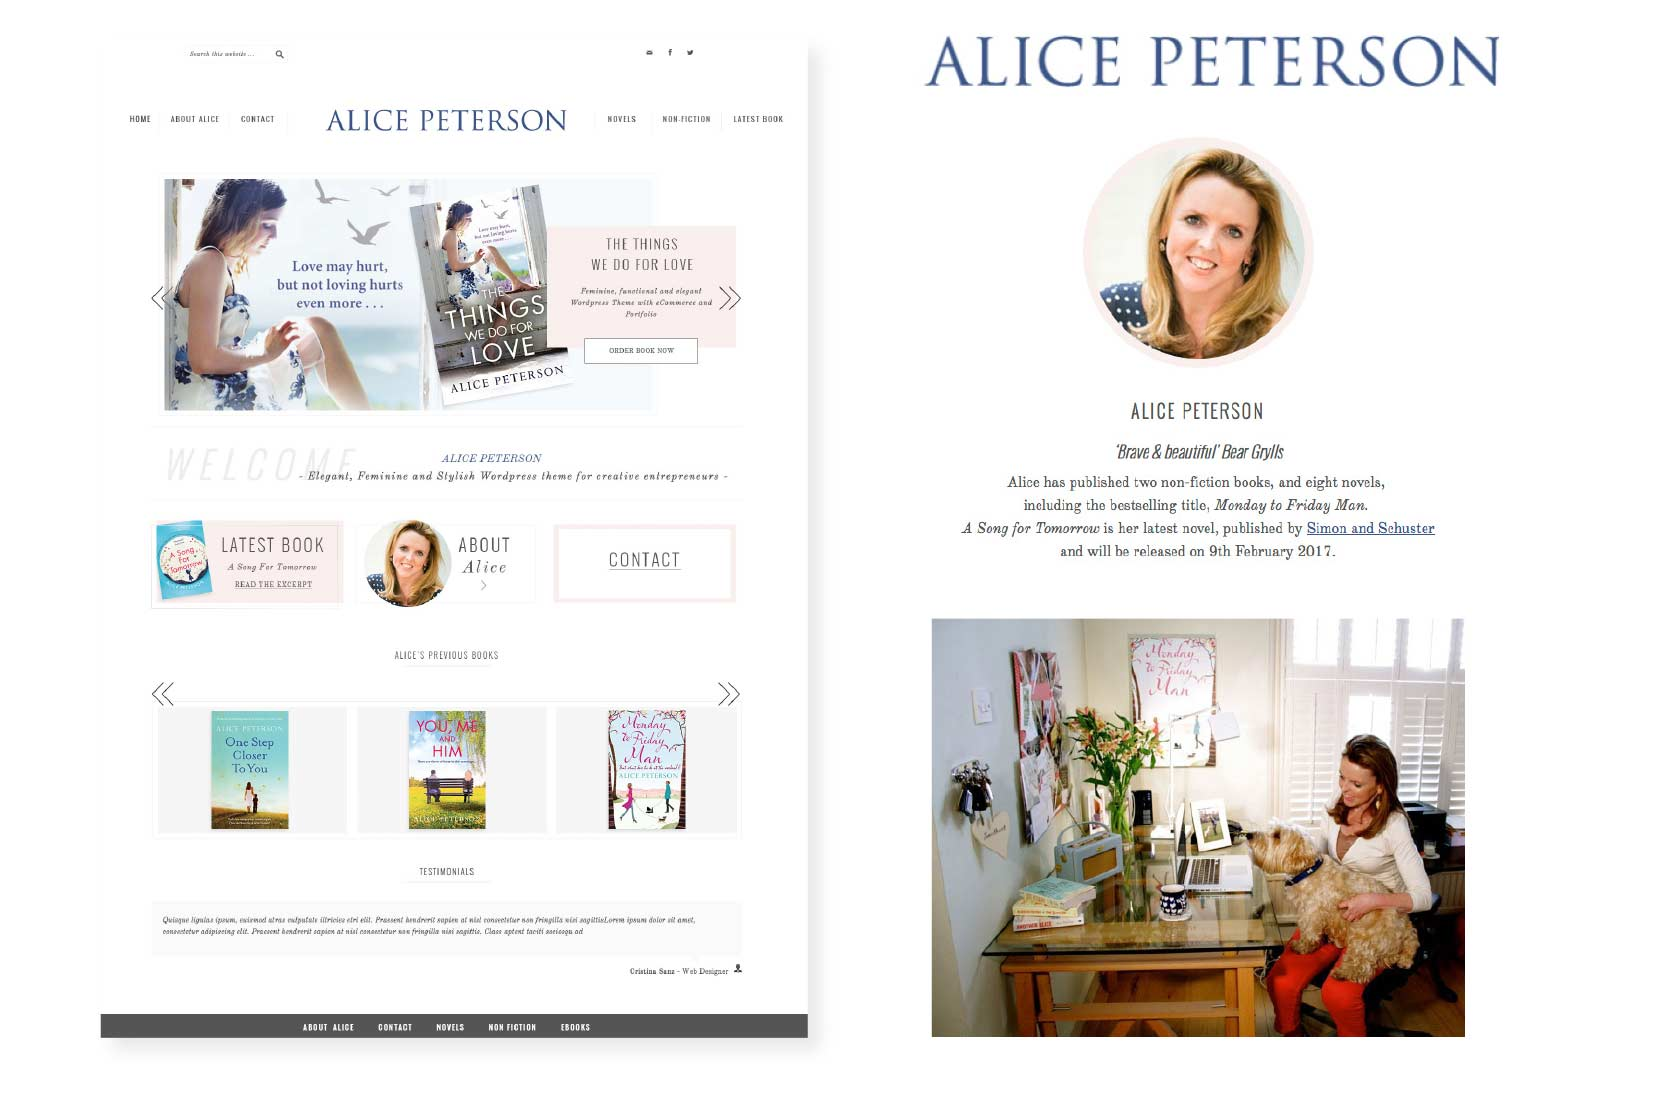 Alice Peterson Website and Biography